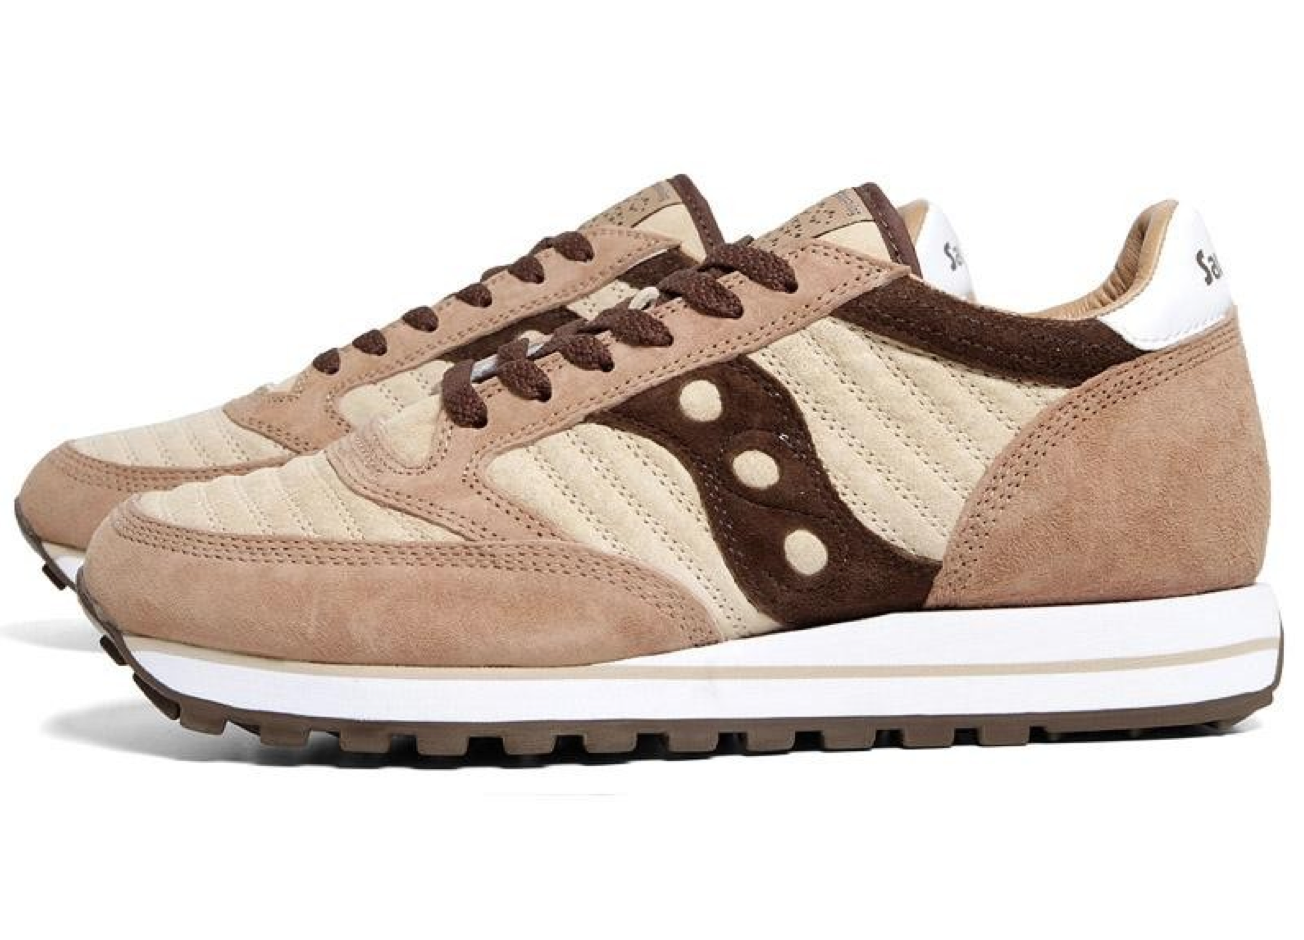 White Mountaineering x Saucony Jazz Original 'Dark Brown/Beige'